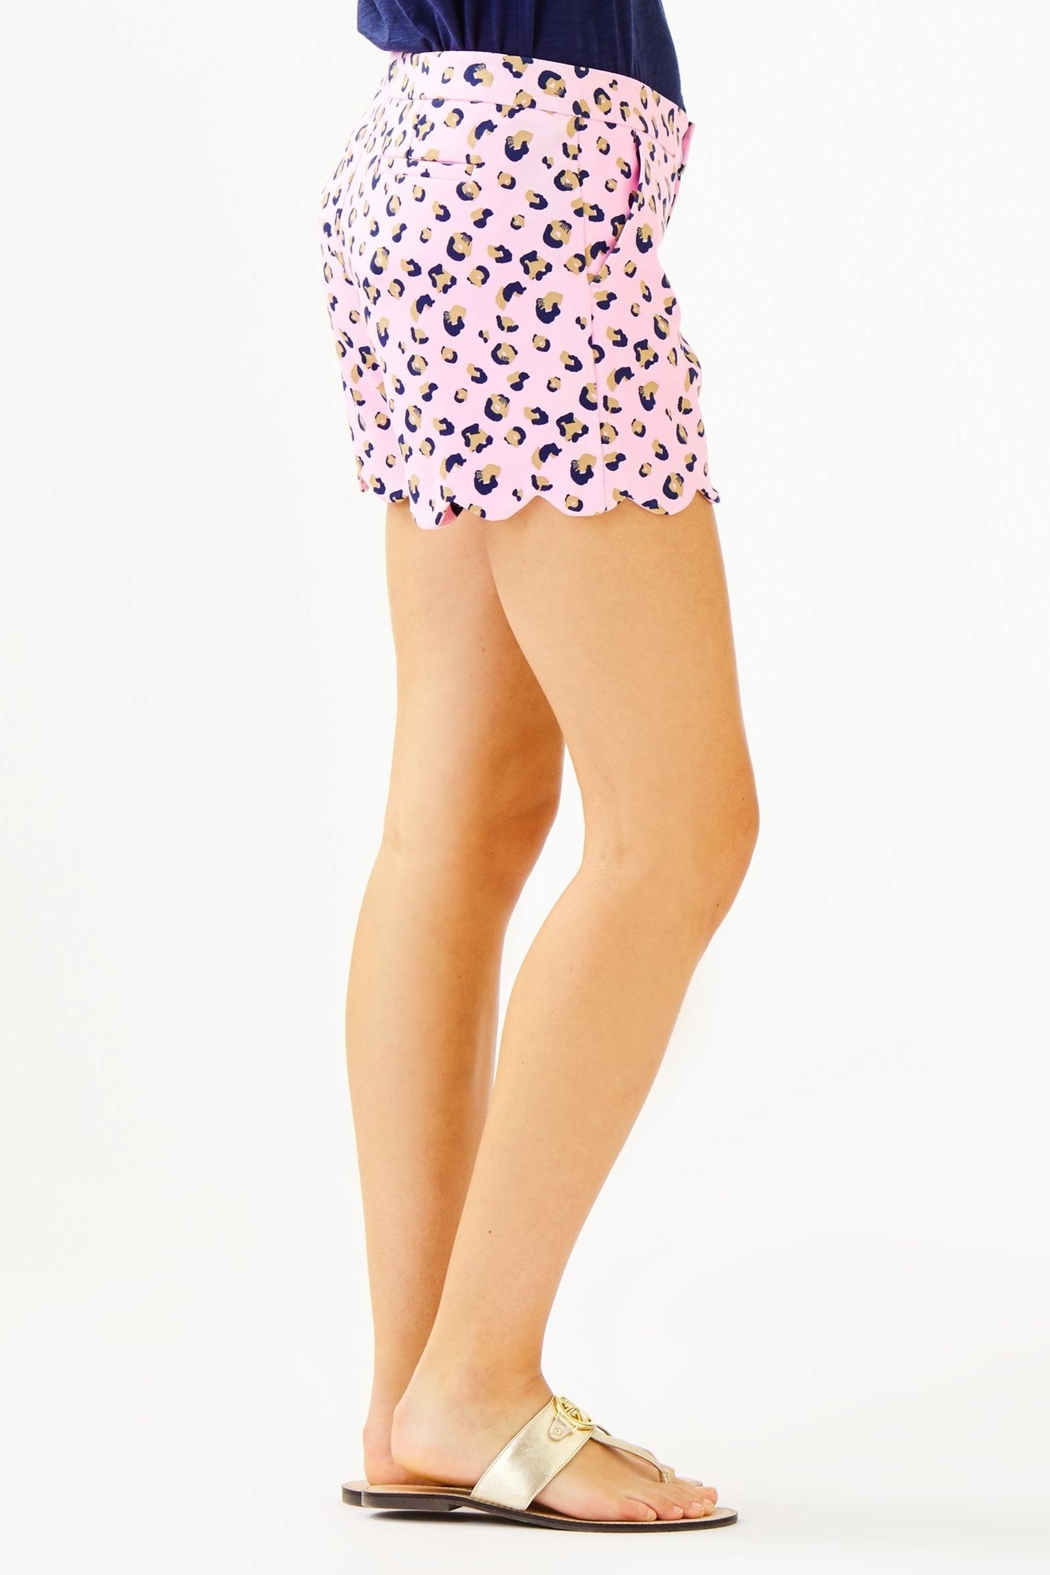 Lilly Pulitzer Buttercup Knit Short - Side Cropped Image